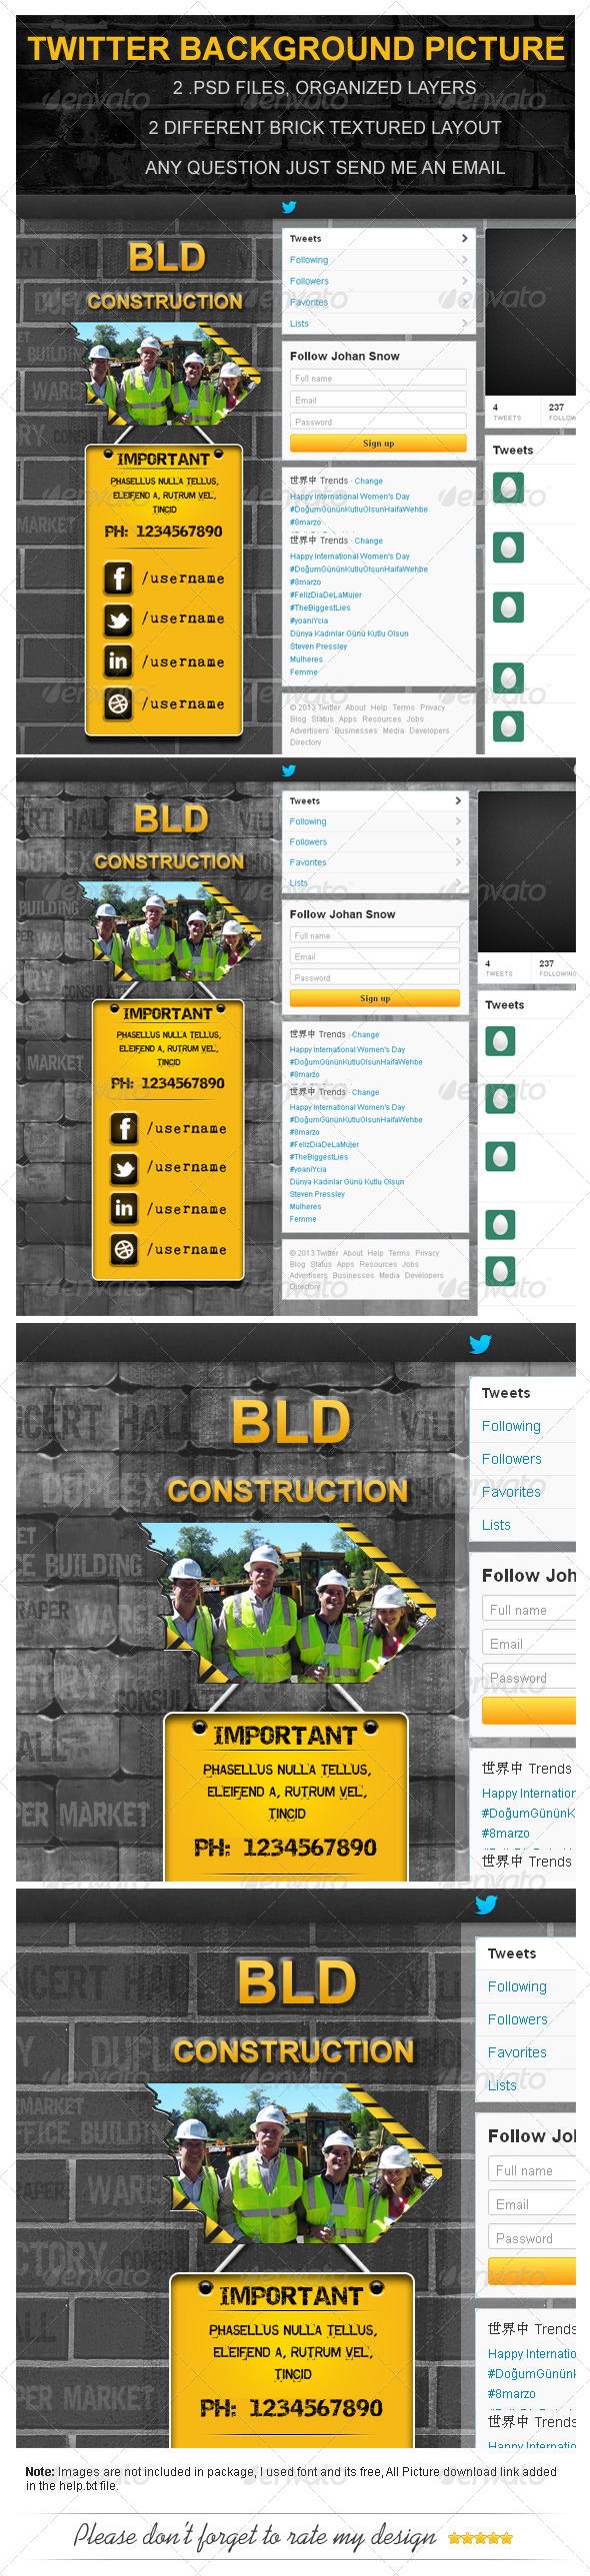 Building Construction Twitter Background Picture - Twitter Social Media